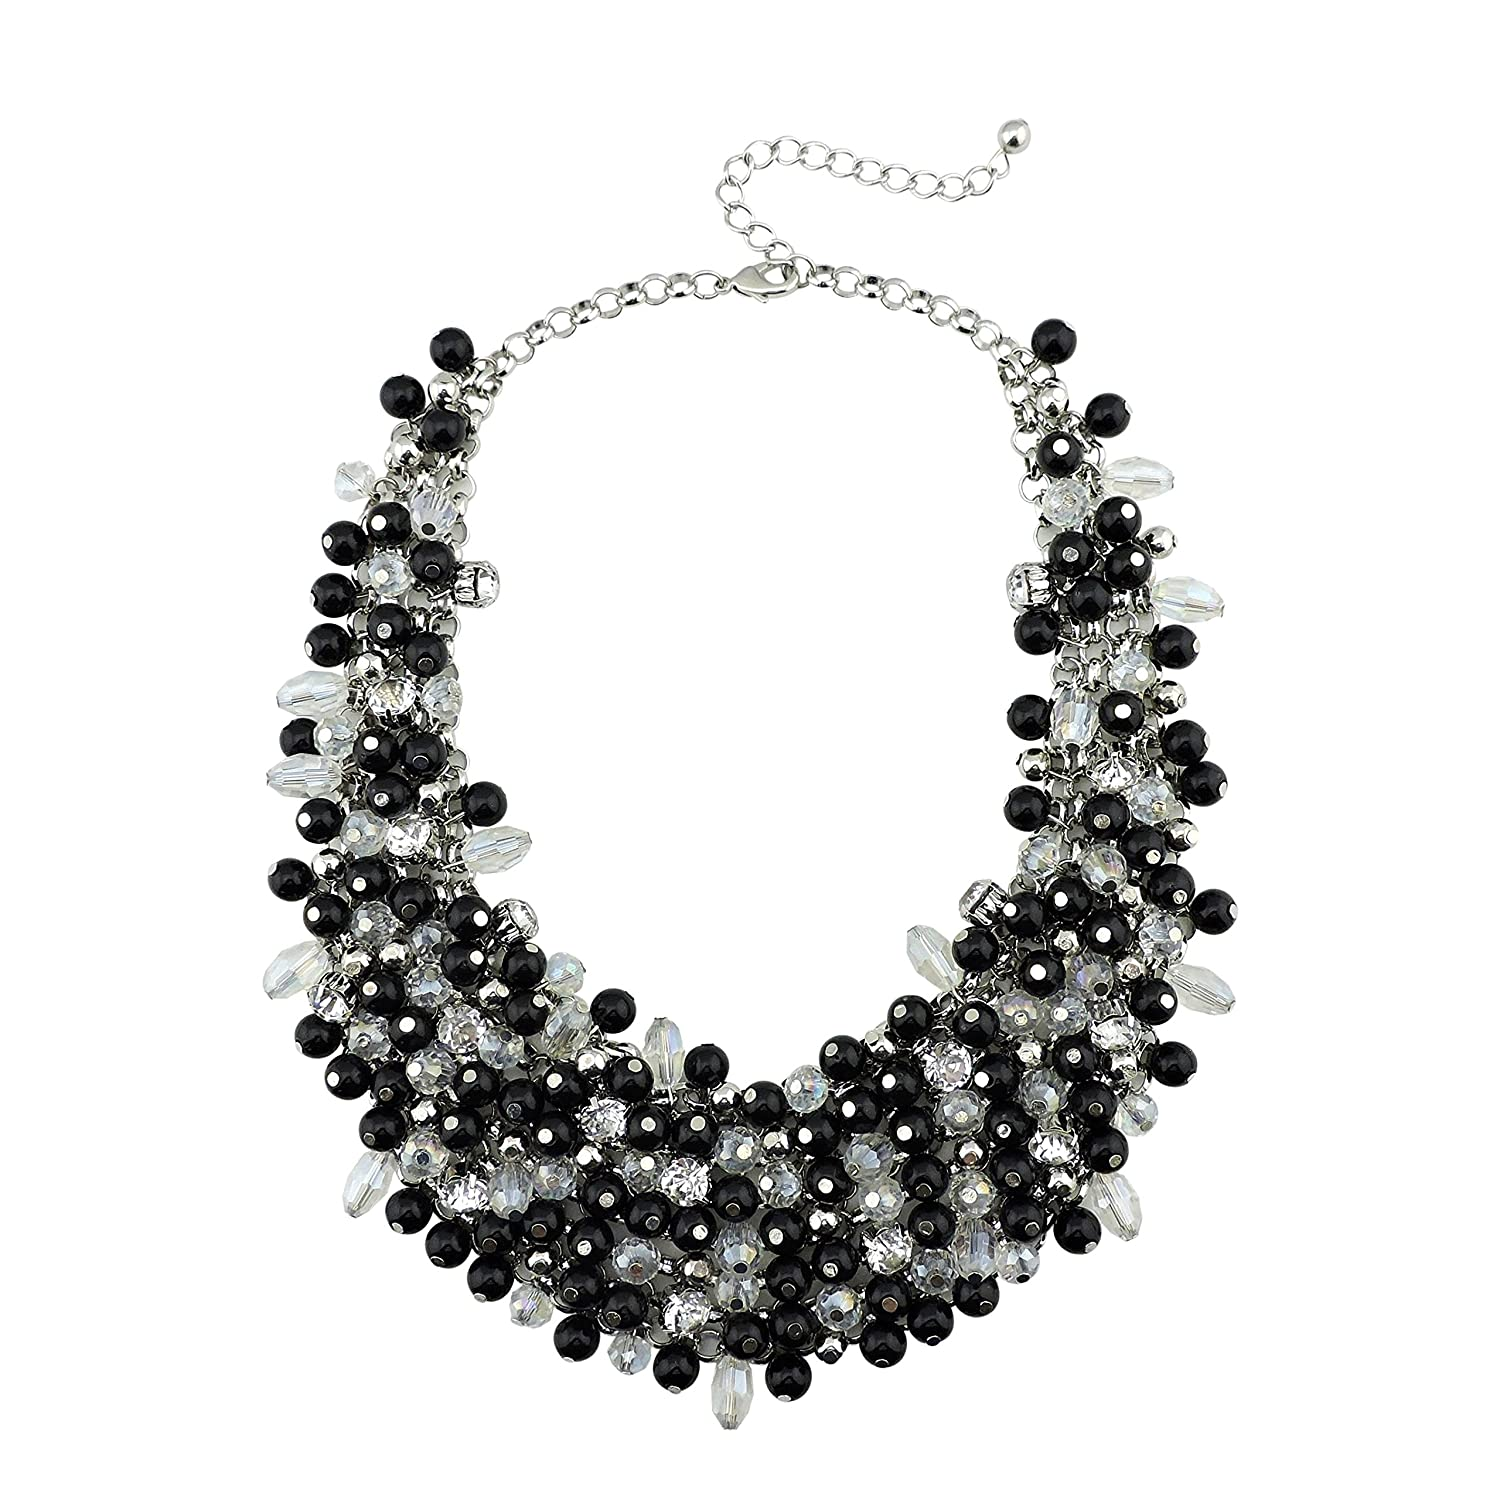 Bocar Fashion Faux Pearl Crystal Chunky Collar Statement Necklace Earring Set for Women Gift bocarjewelry NK-10260